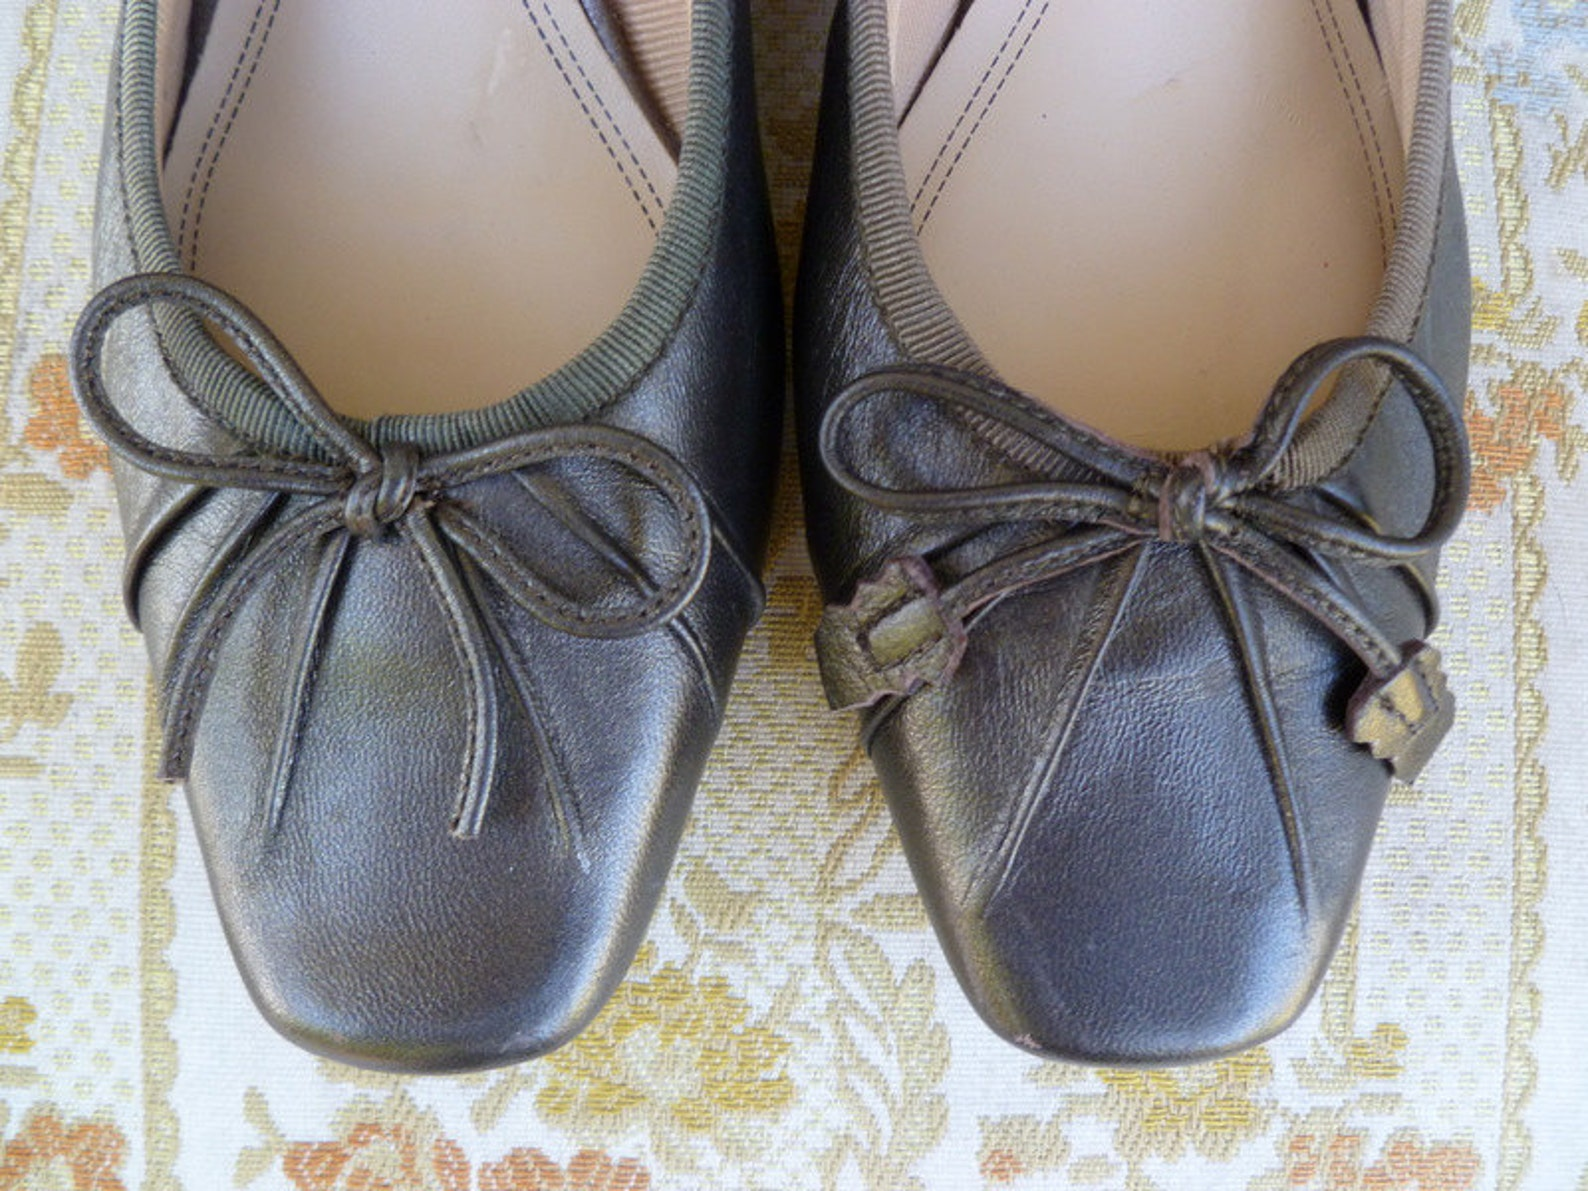 1960s vintage bronze leather ballet style shoes